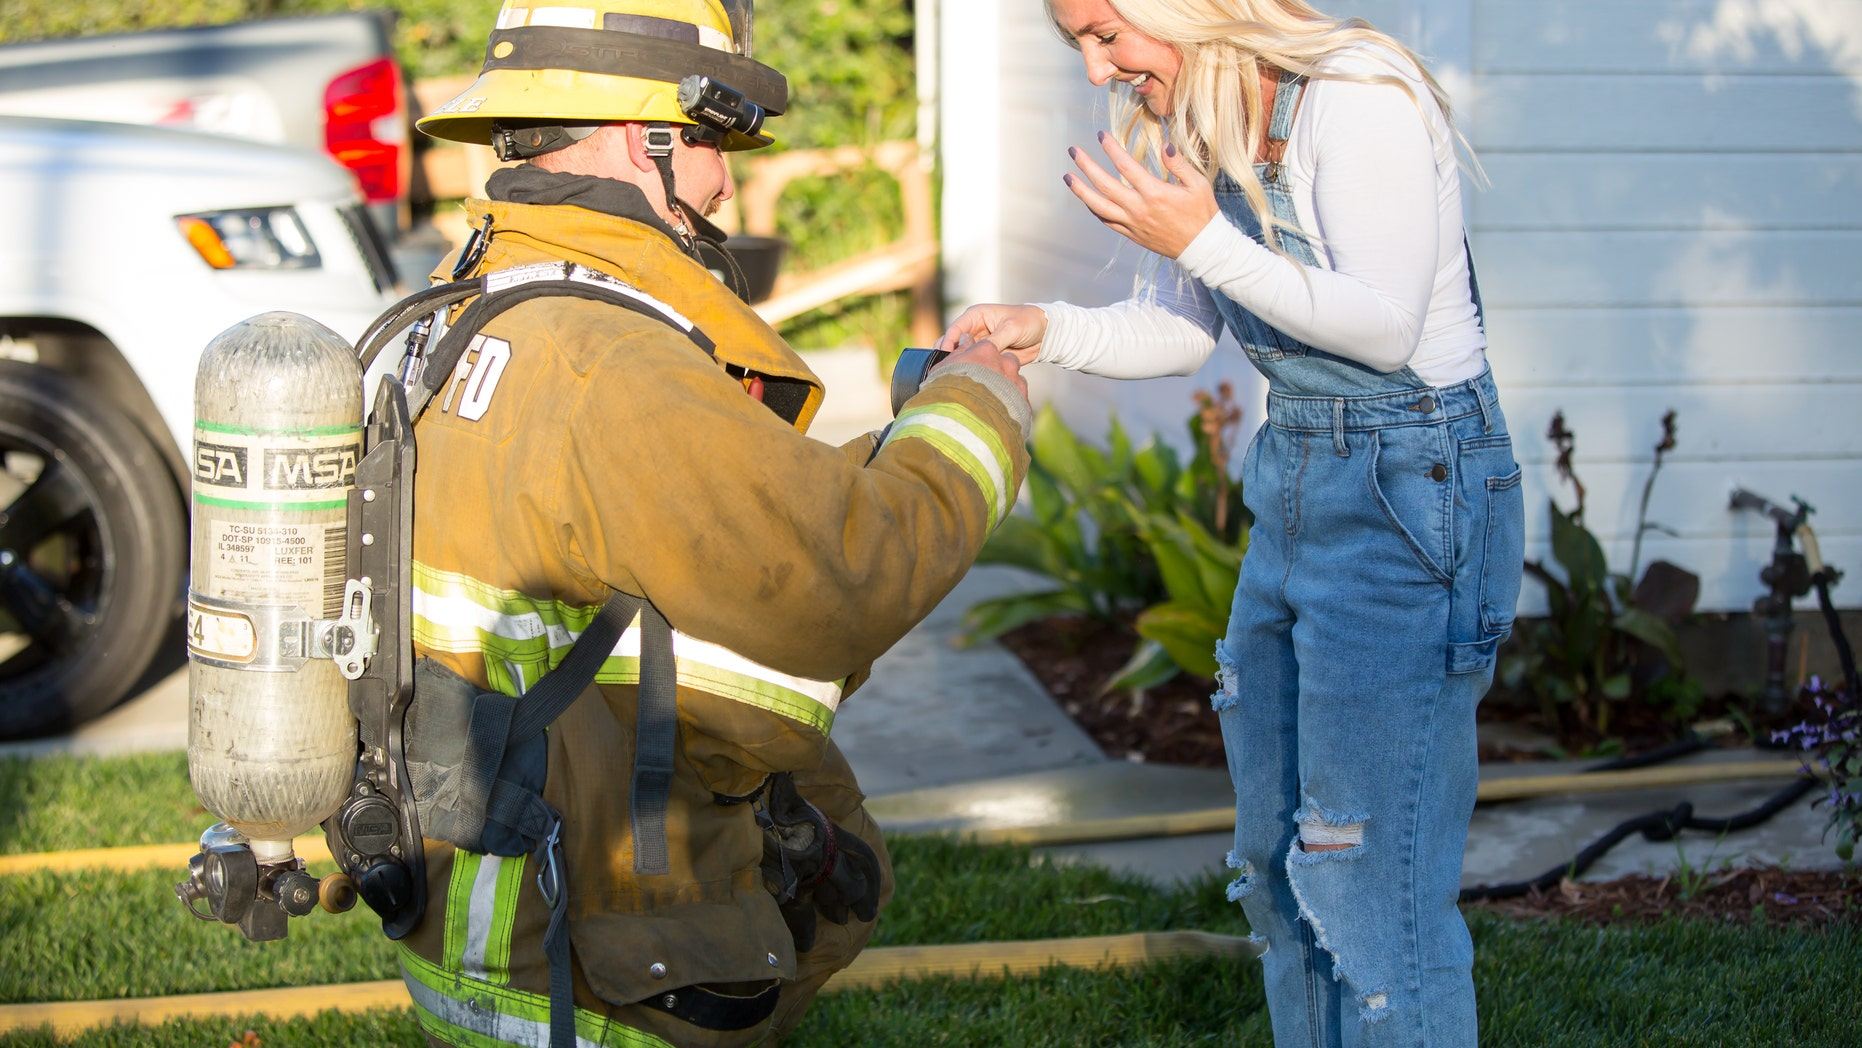 Fireman fiance Zach Steele, 30, proposes to girlfriend Maddison Ridgik, 30, after he faked a fire using smoke machines to create a surprise proposal at their home.